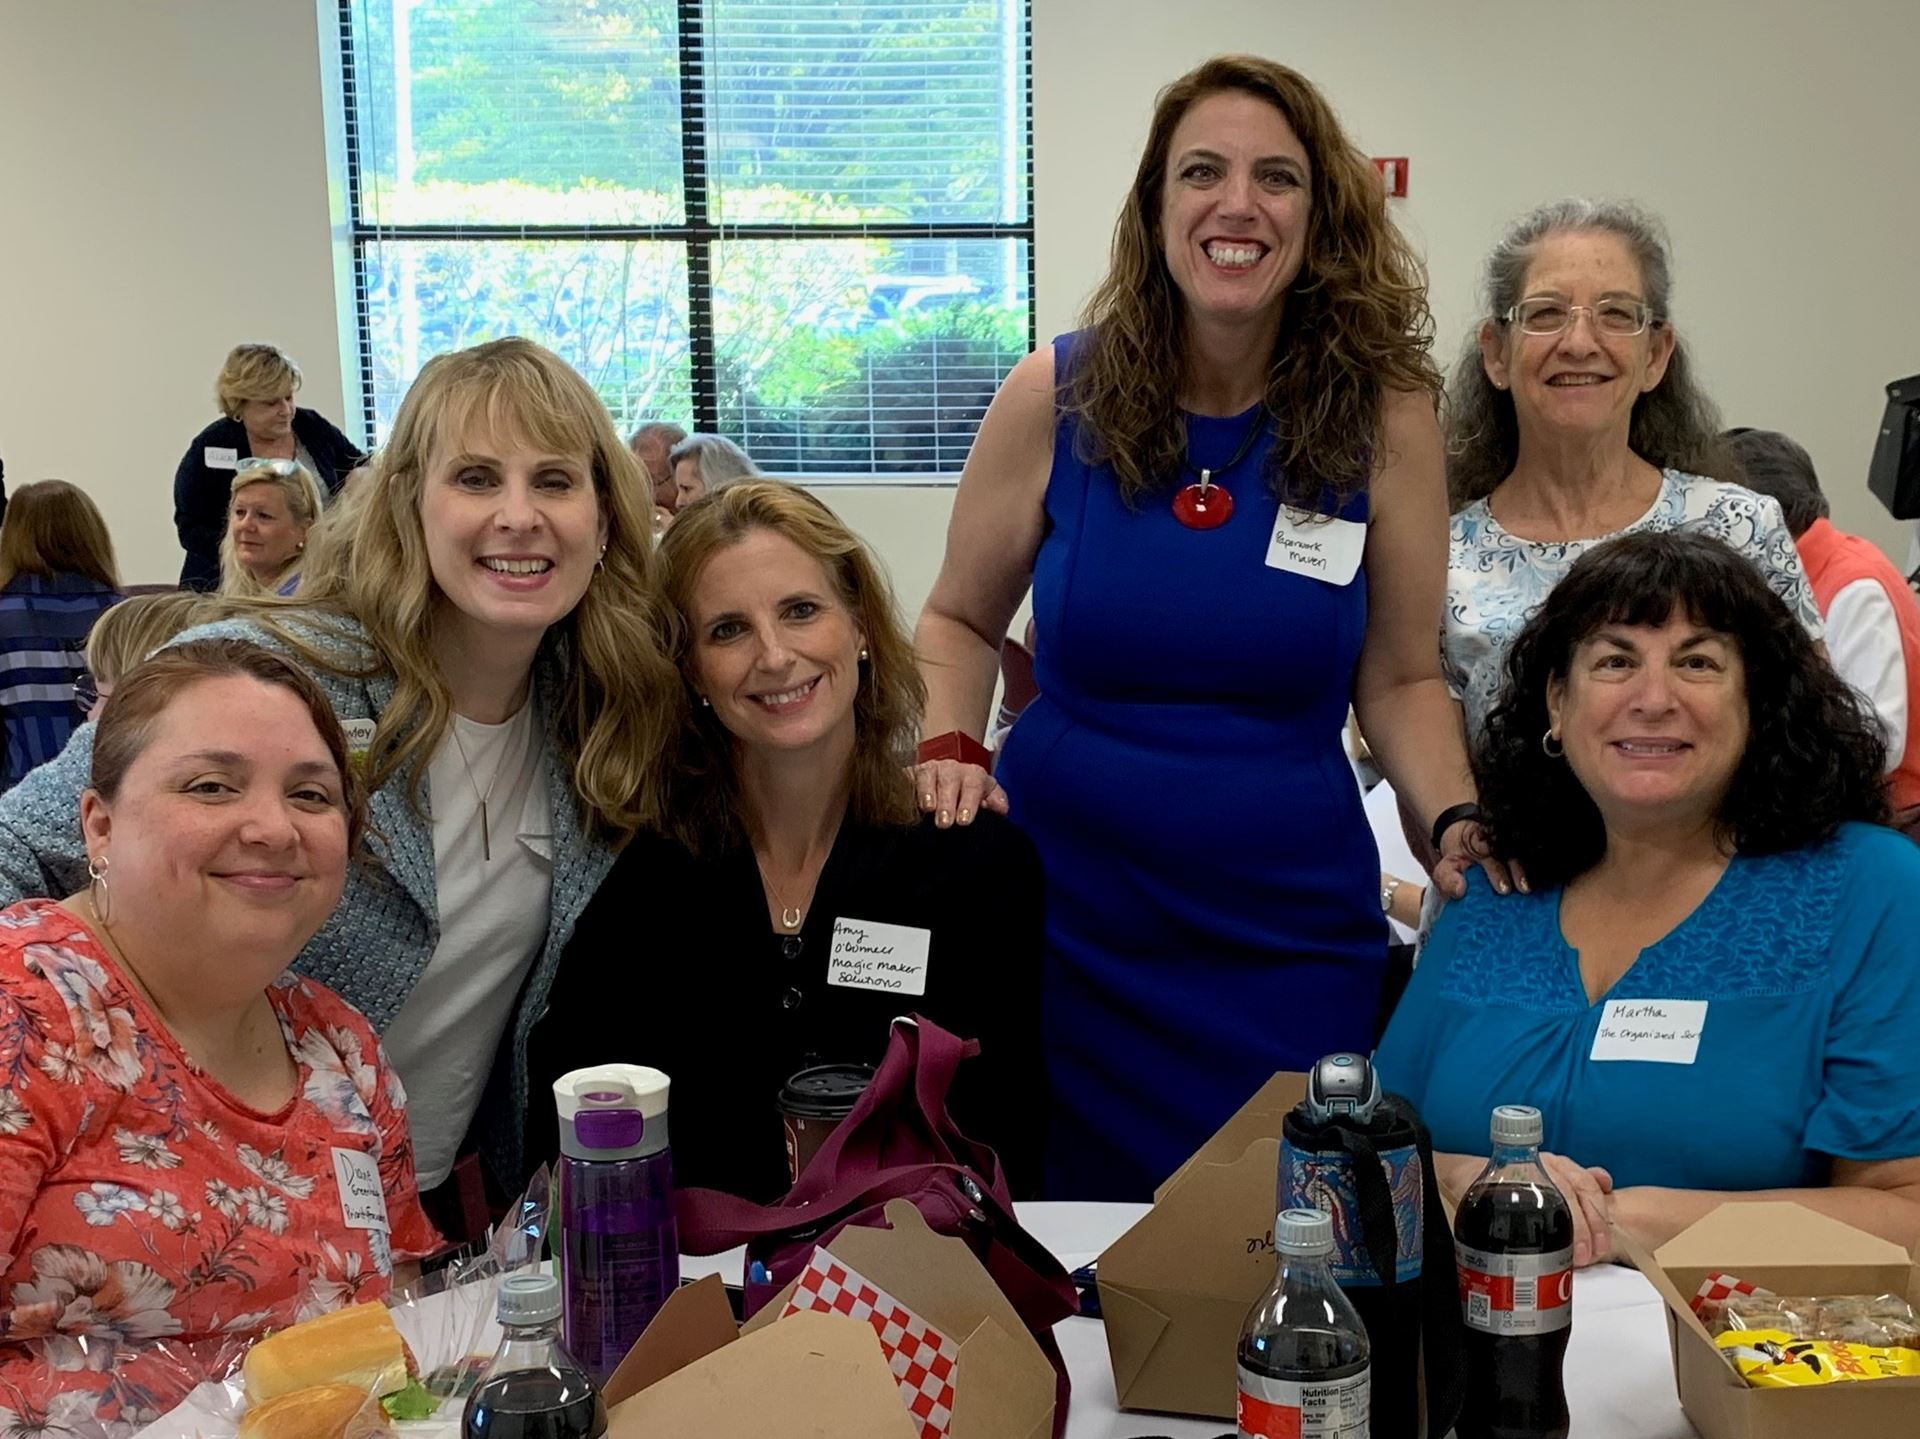 (left to right) Diane Greenhalgh, C. Lee Cawley, Amy O'Donnell, J.J. Jackson, Judy Tiger, Martha Blumenthal